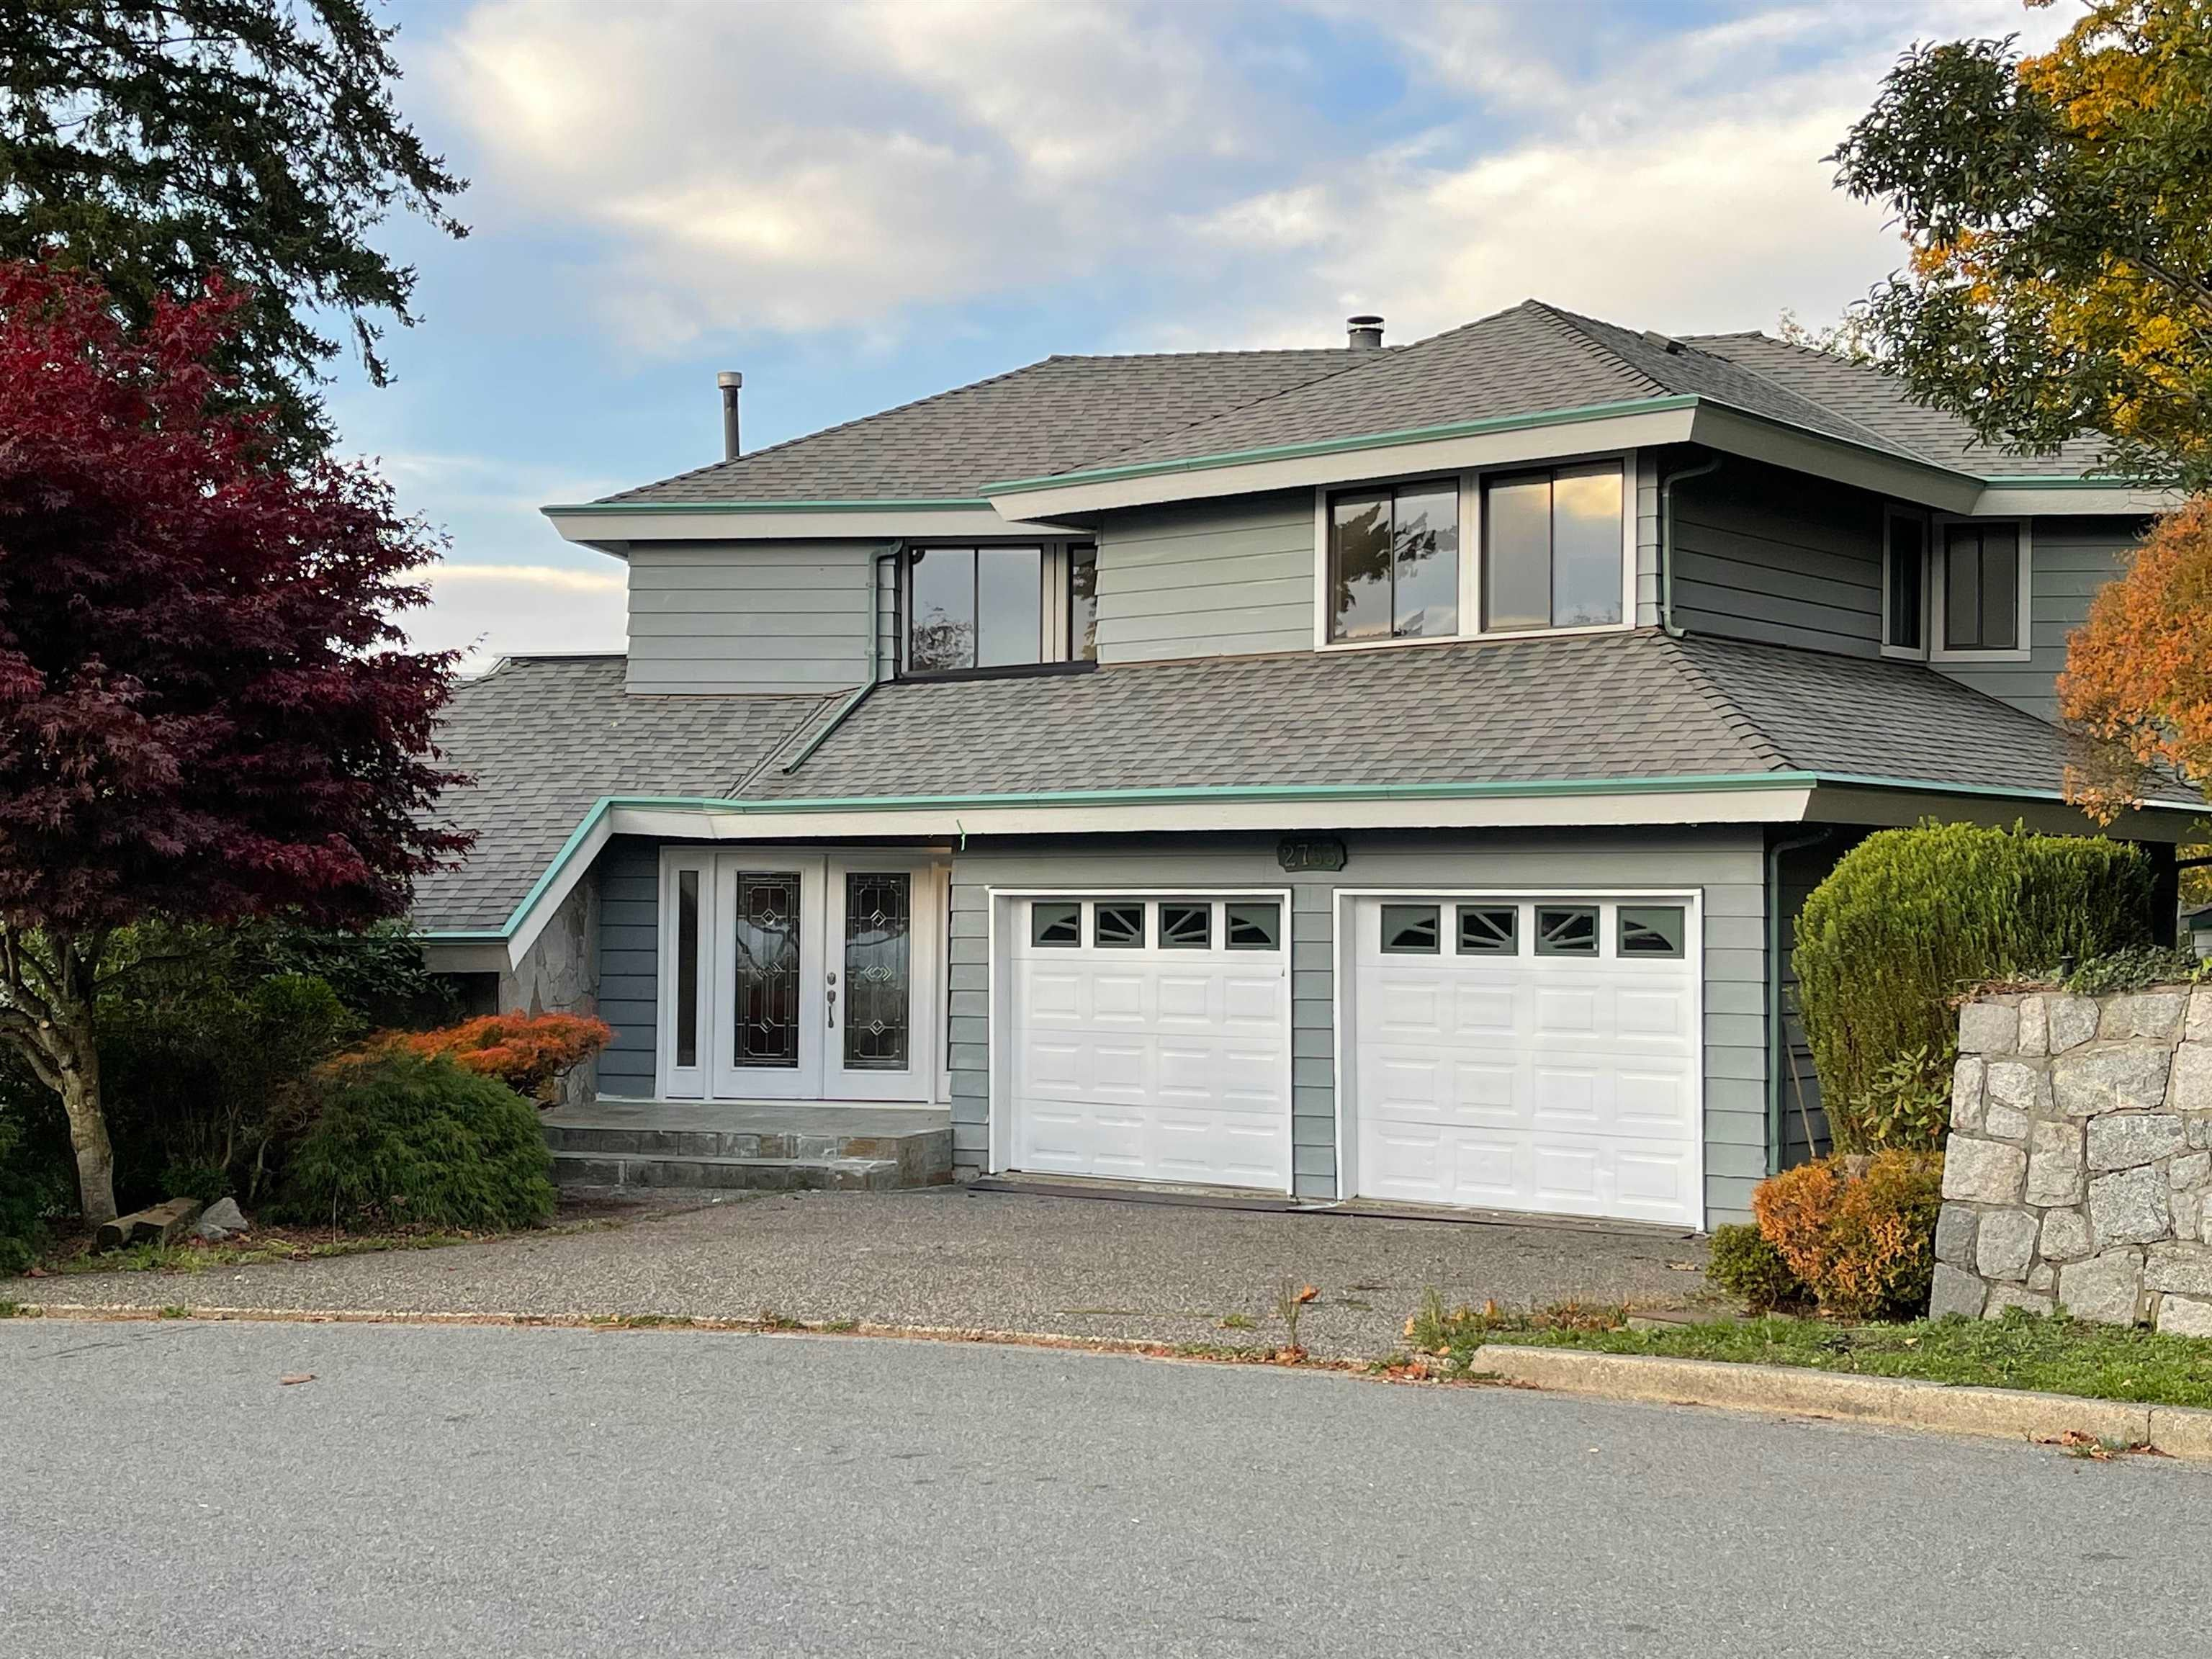 2753 LUCERN CRESCENT - Abbotsford East House/Single Family for sale, 4 Bedrooms (R2627775) - #1